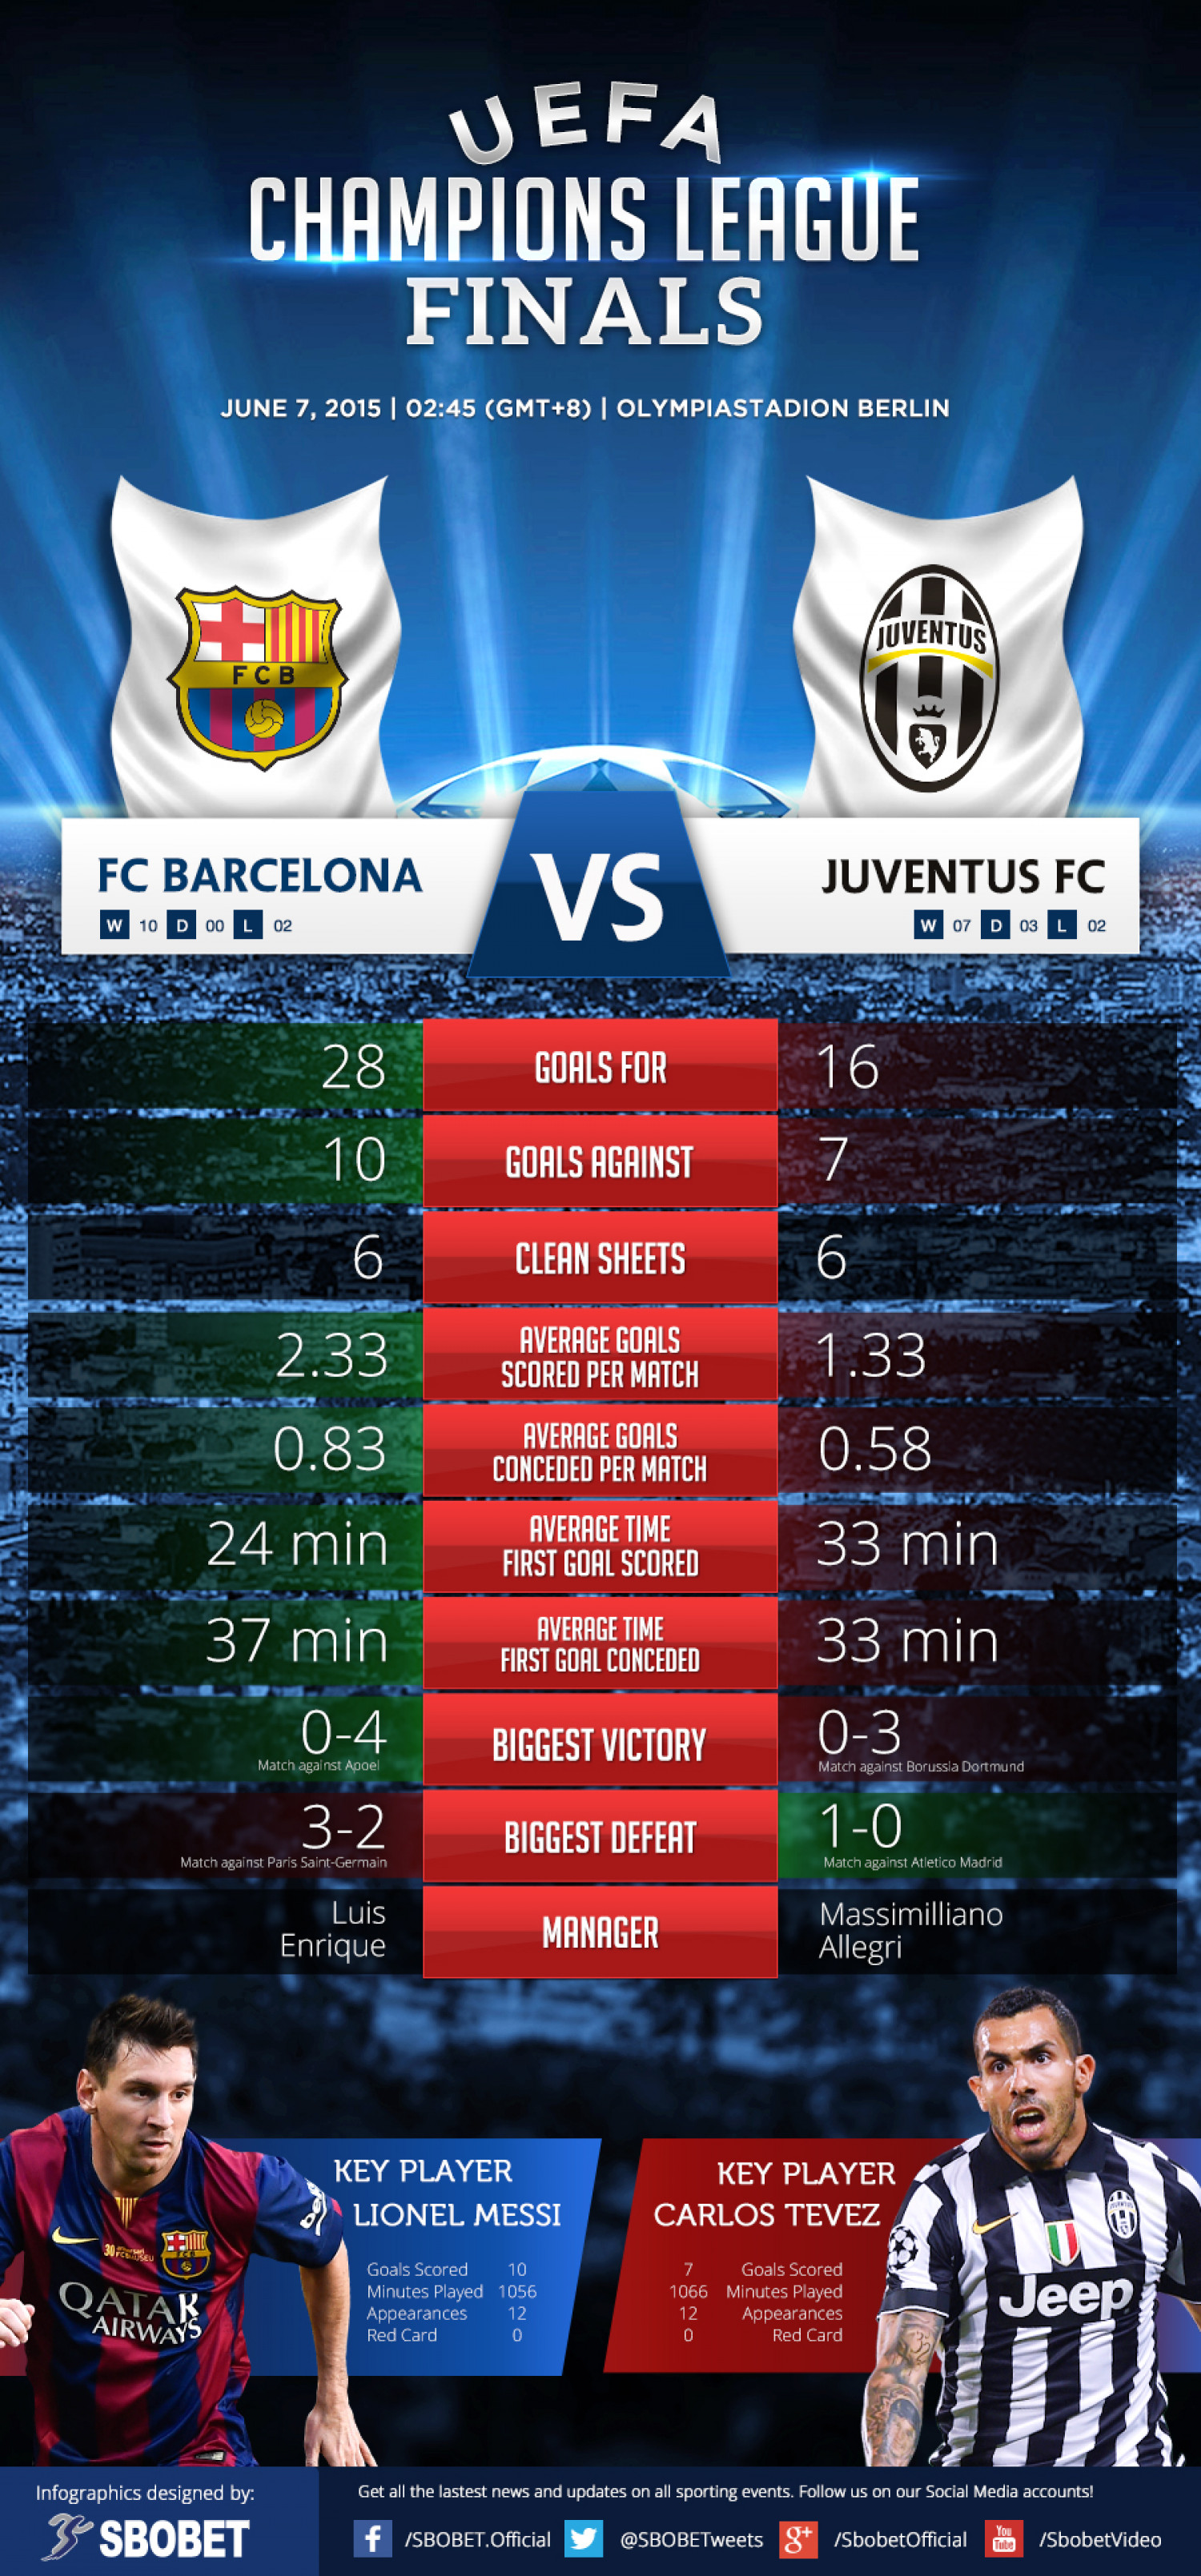 Uefa Champions League Final Fc Barcelona Vs Juventus Fc Visual Ly